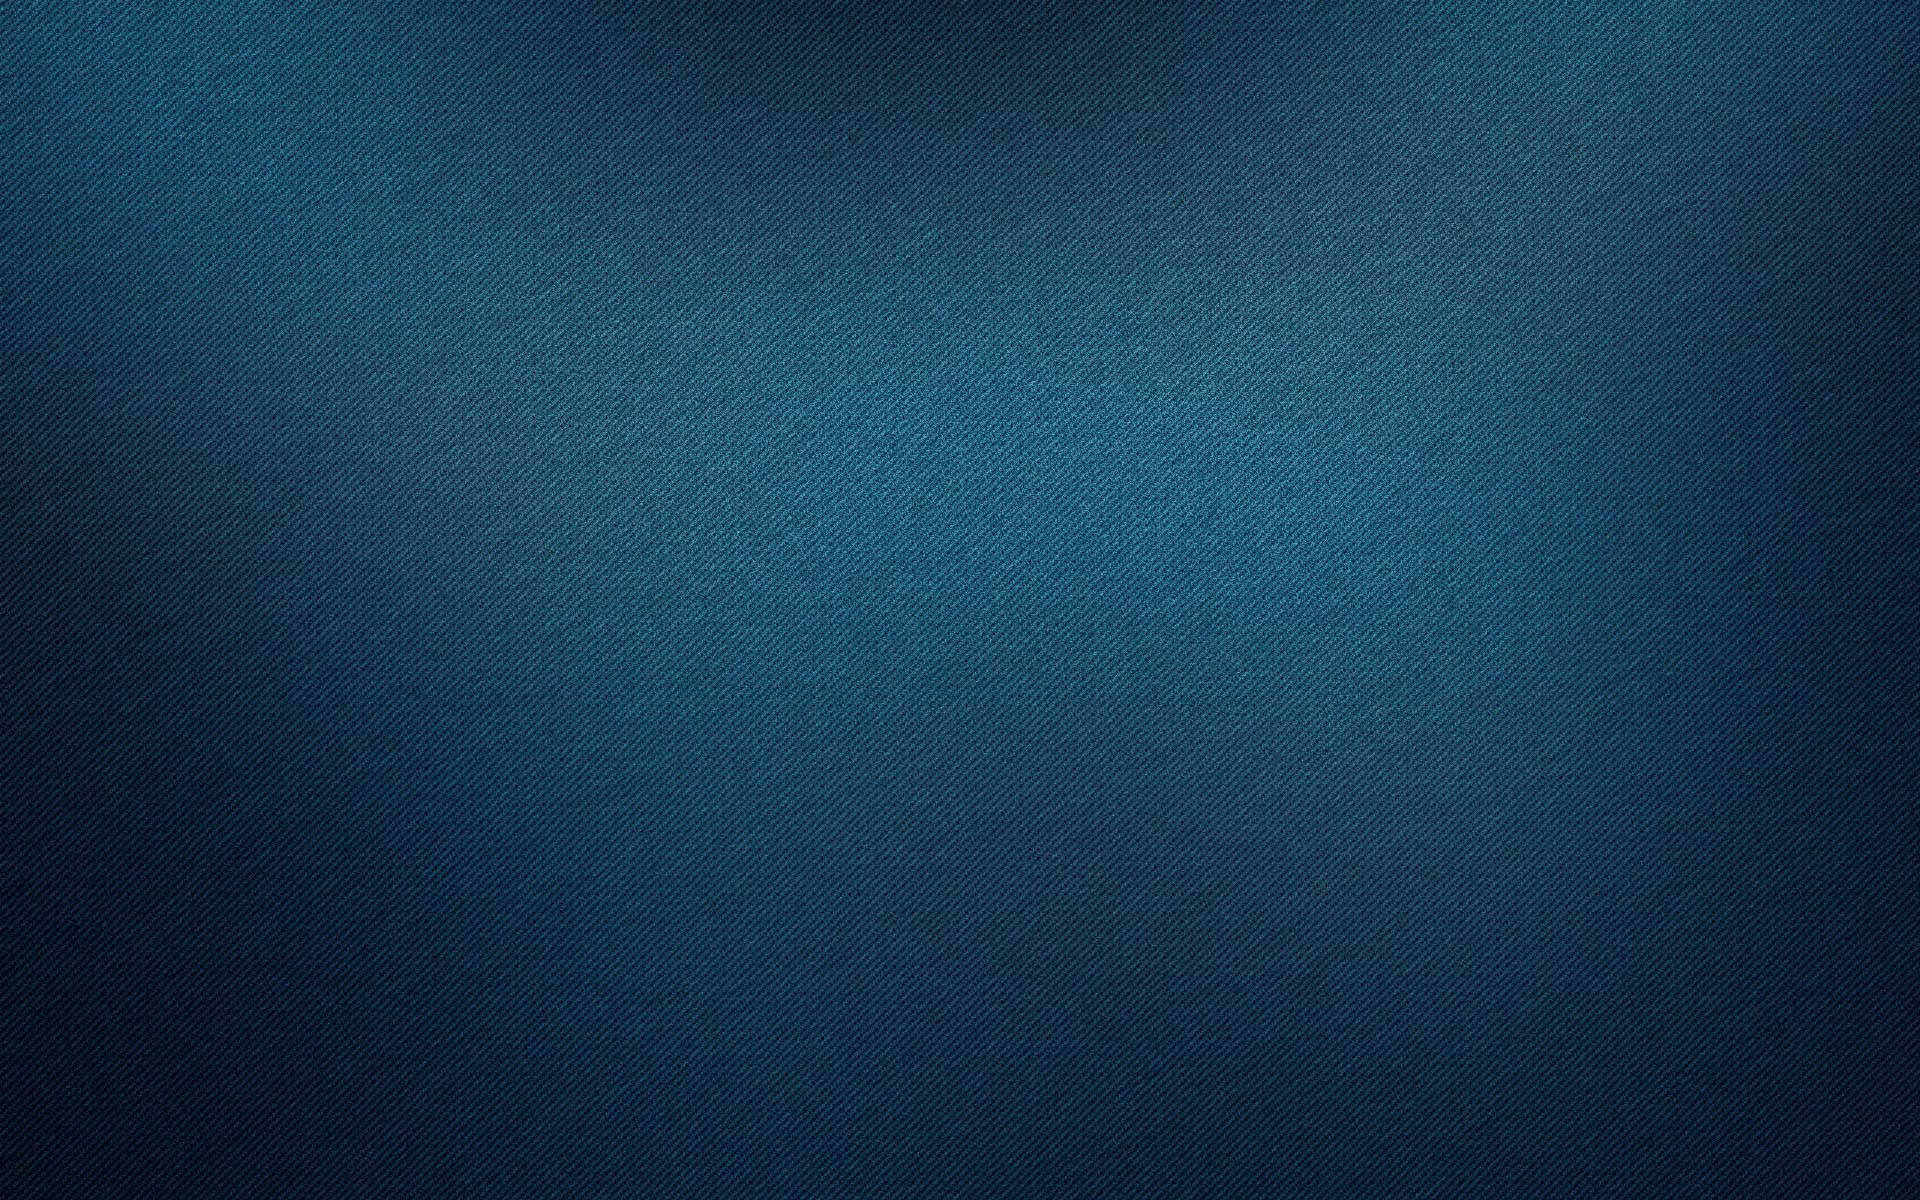 7 HD Denim Wallpapers